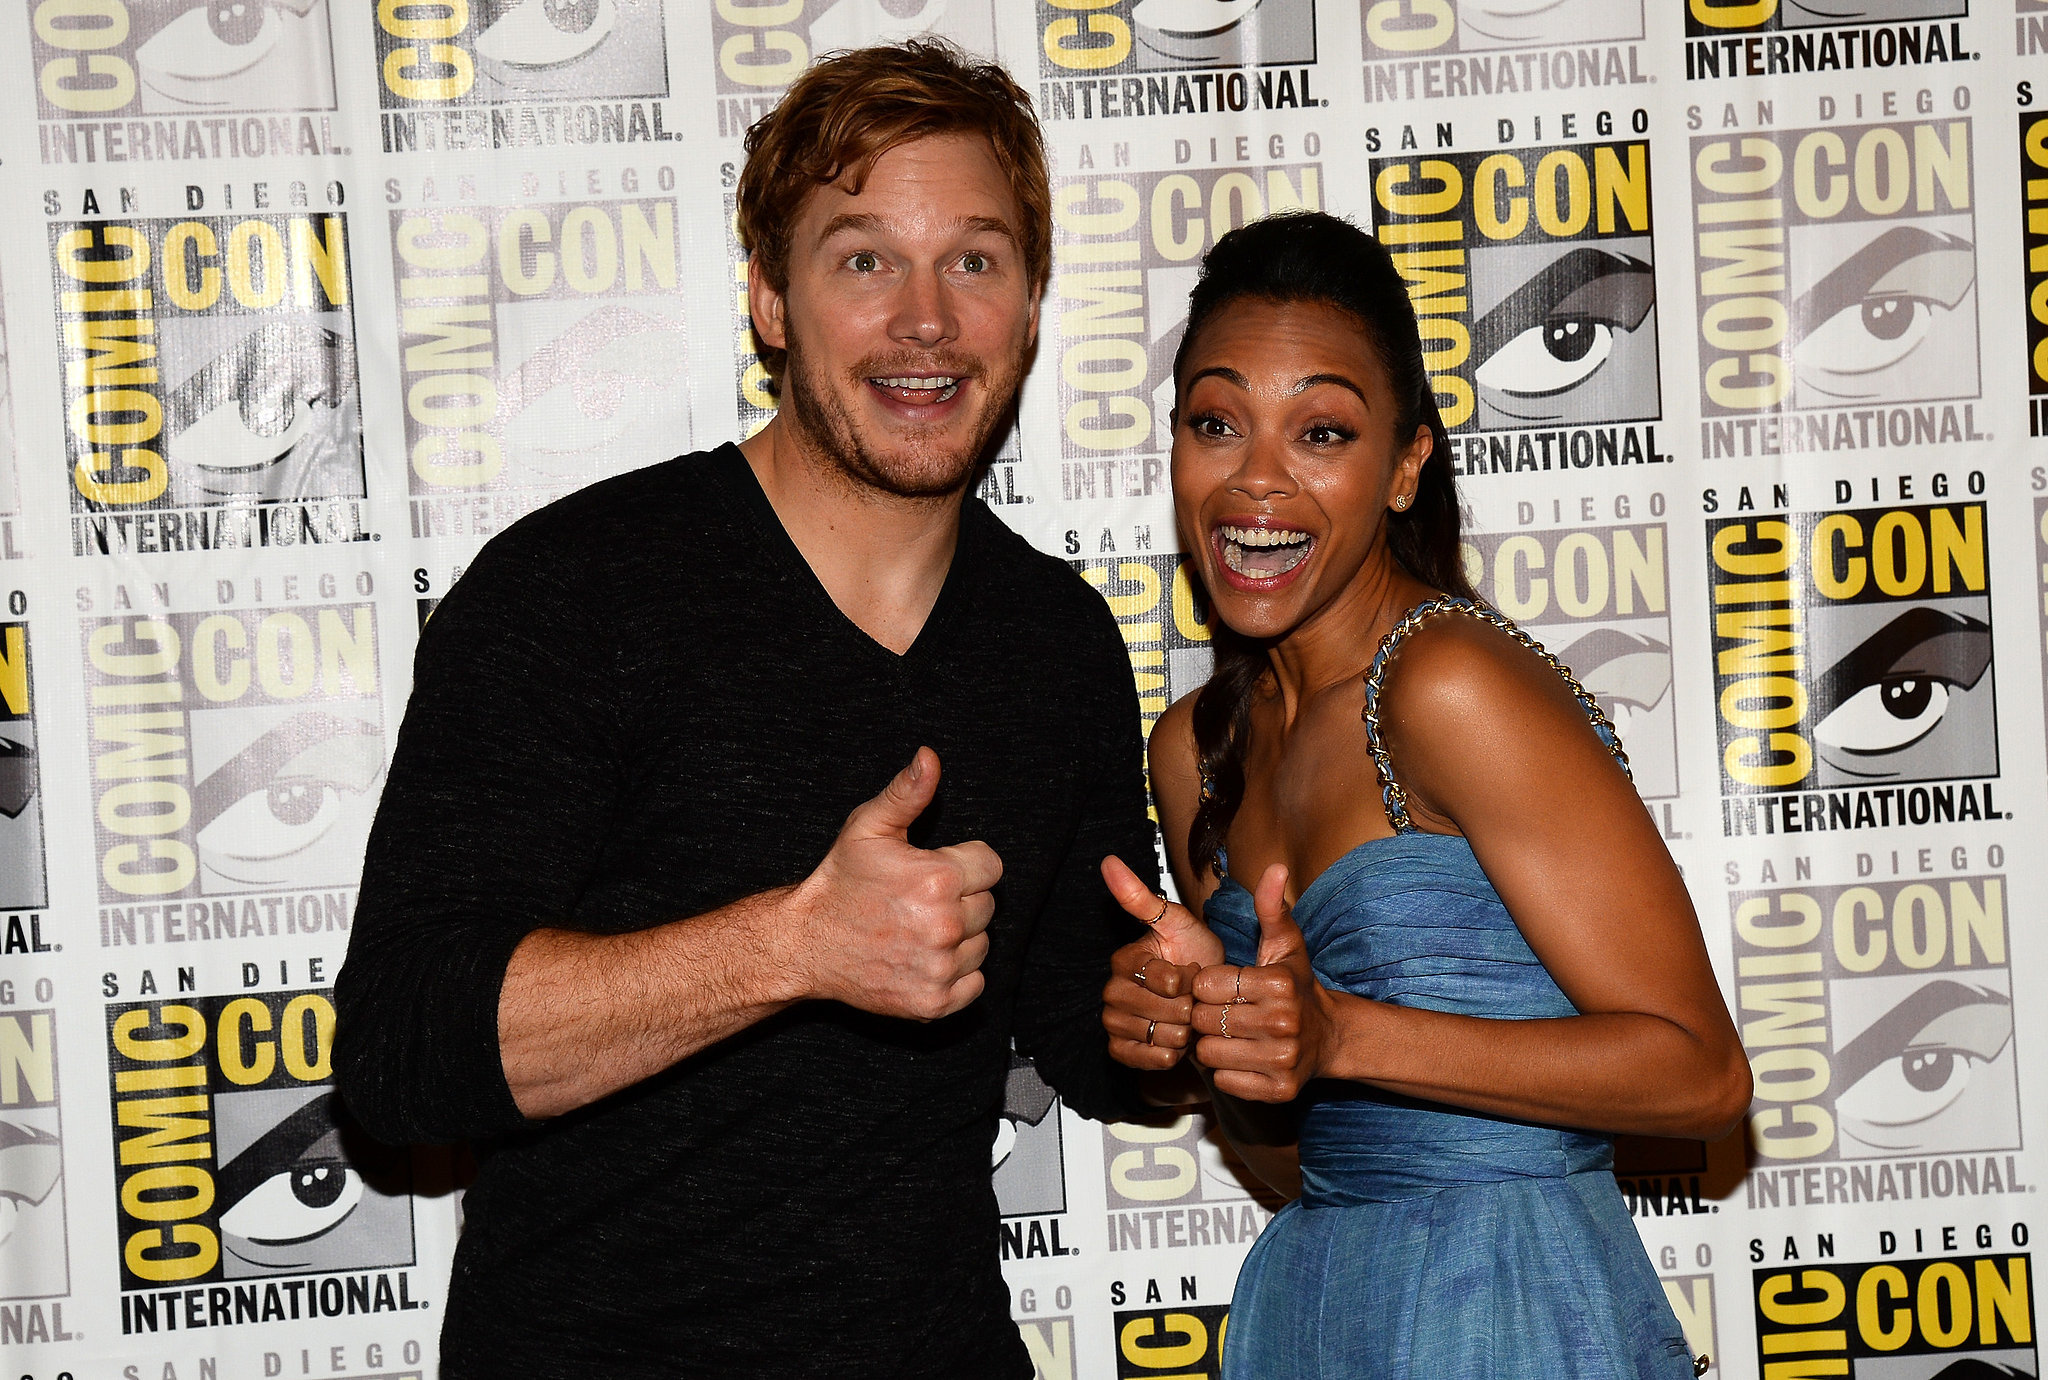 Chris Pratt and Zoe Saldana gave their thumbs-up on the red carpet for the Guardians of the Galaxy event in 2013.